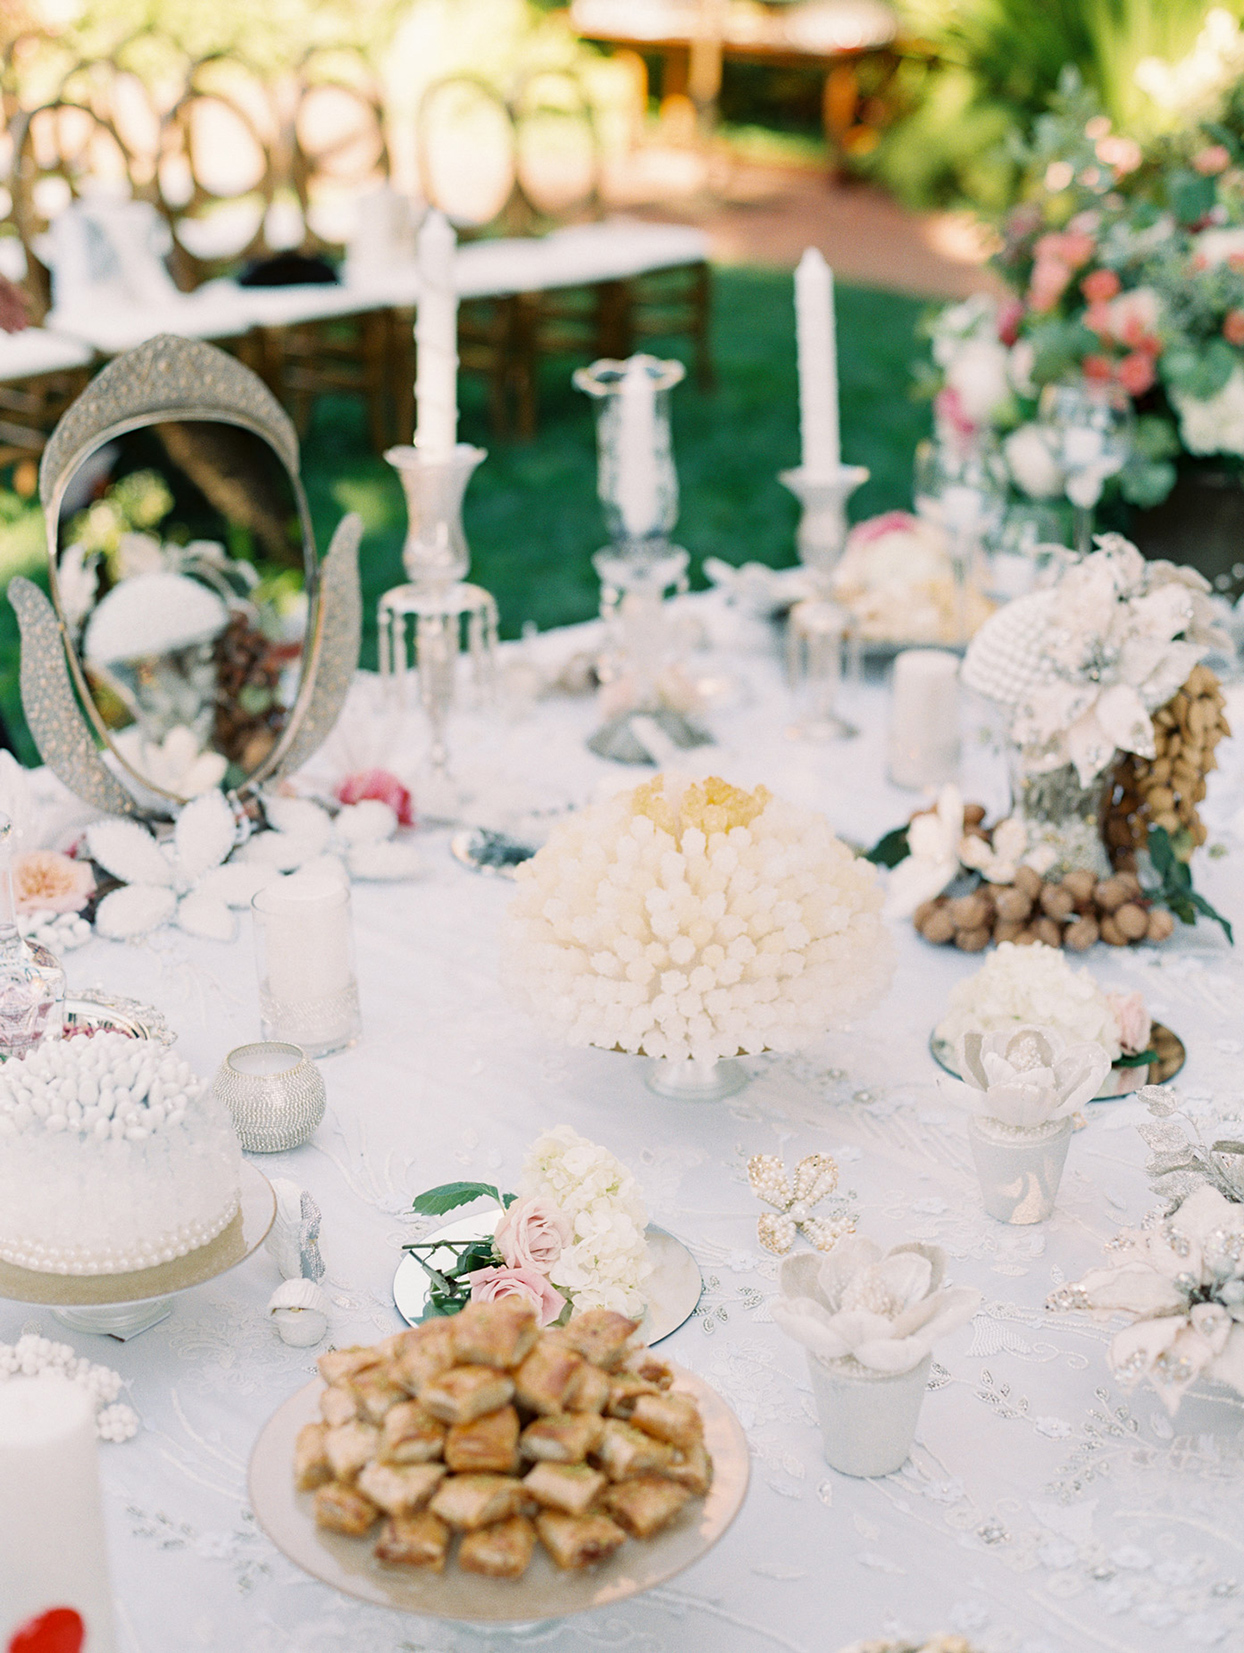 wedding sofreh on elegant white beaded table